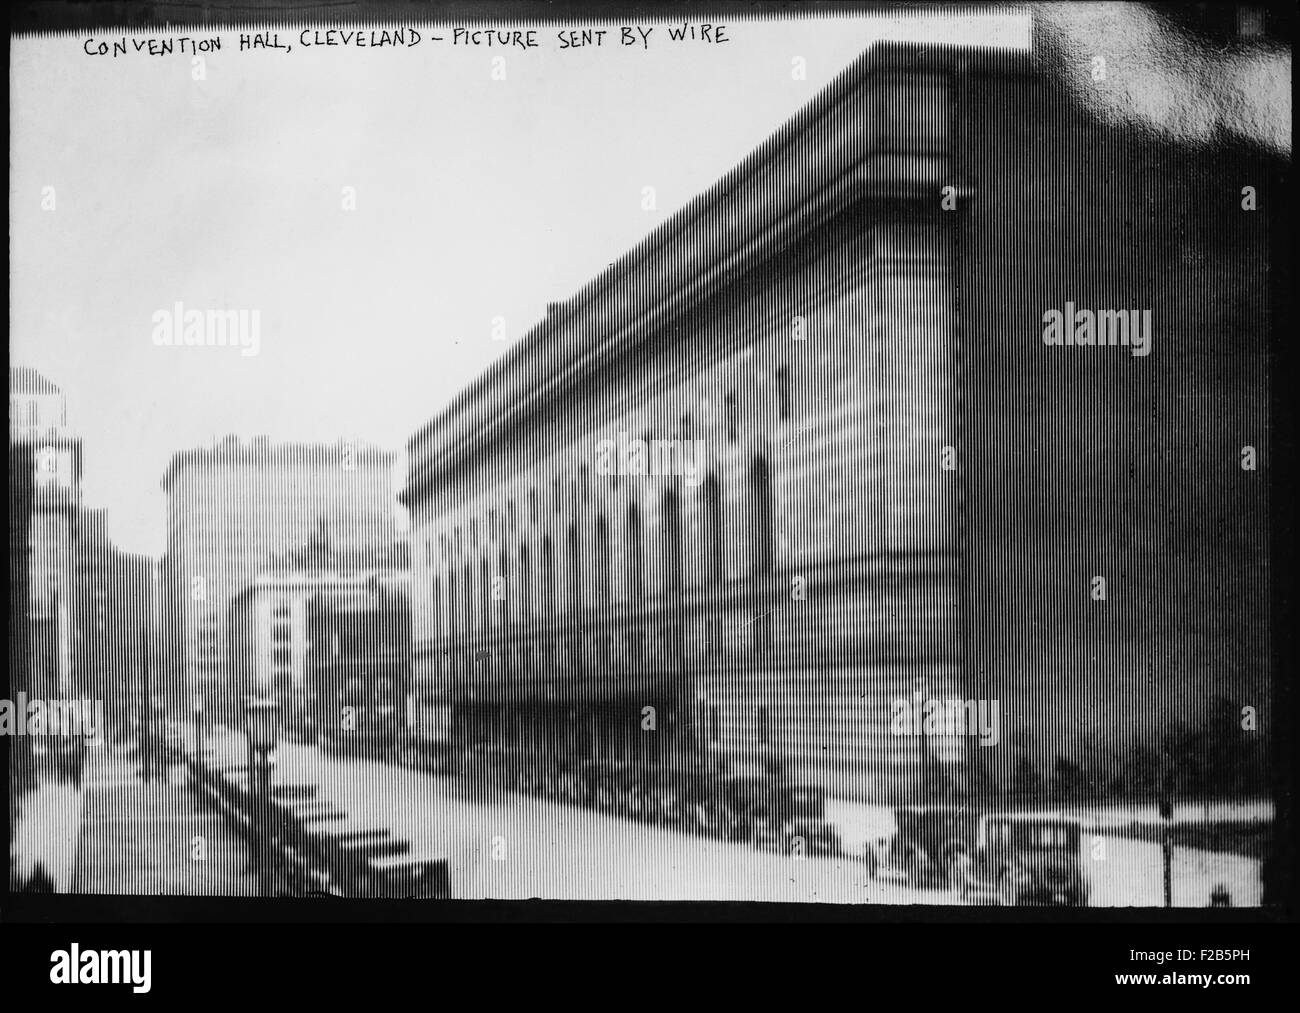 Public Auditorium, Cleveland, Ohio in image sent by wire to Bain ...